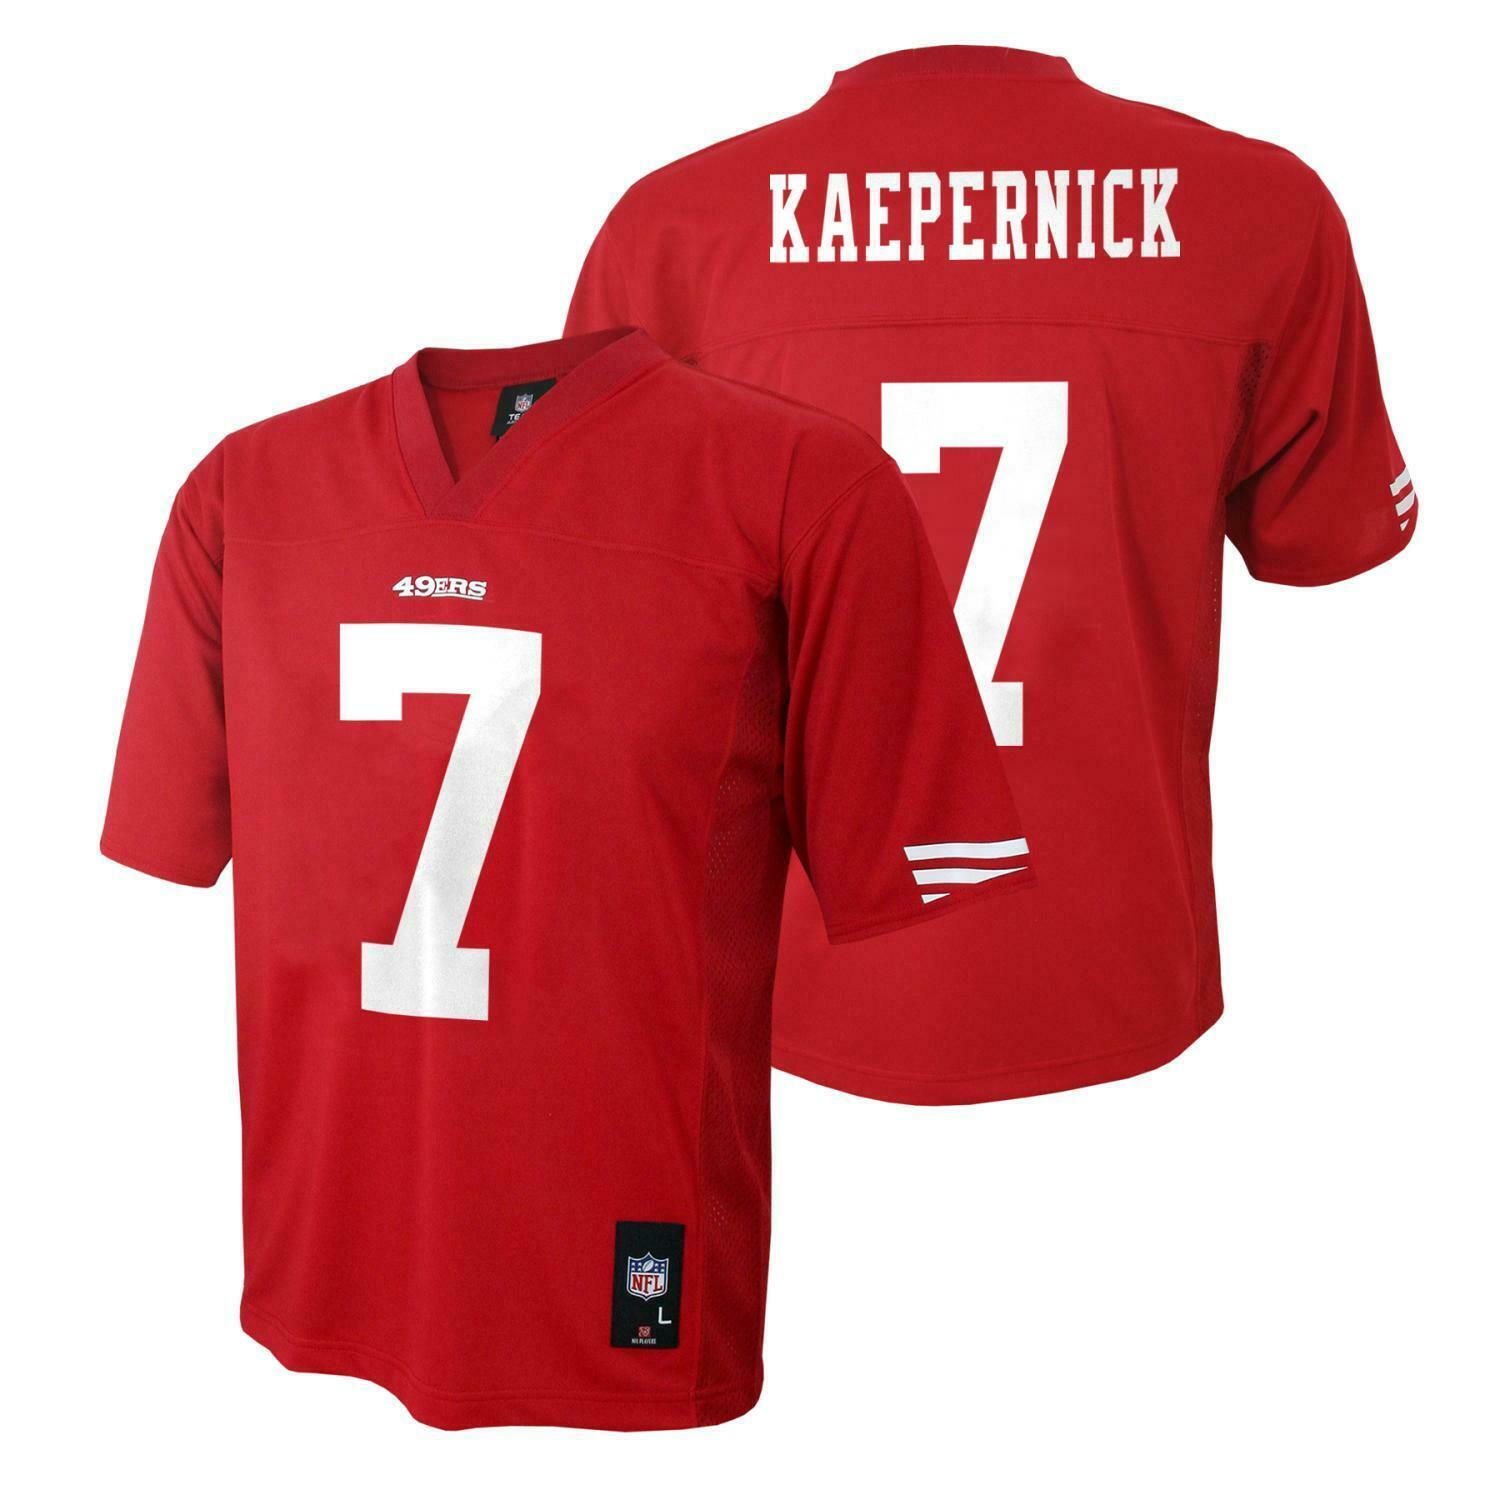 Primary image for NFL Team Apparel Boys San Francisco 49'ers Kaepernick #7 Jersey 5-6 & 7 NWT